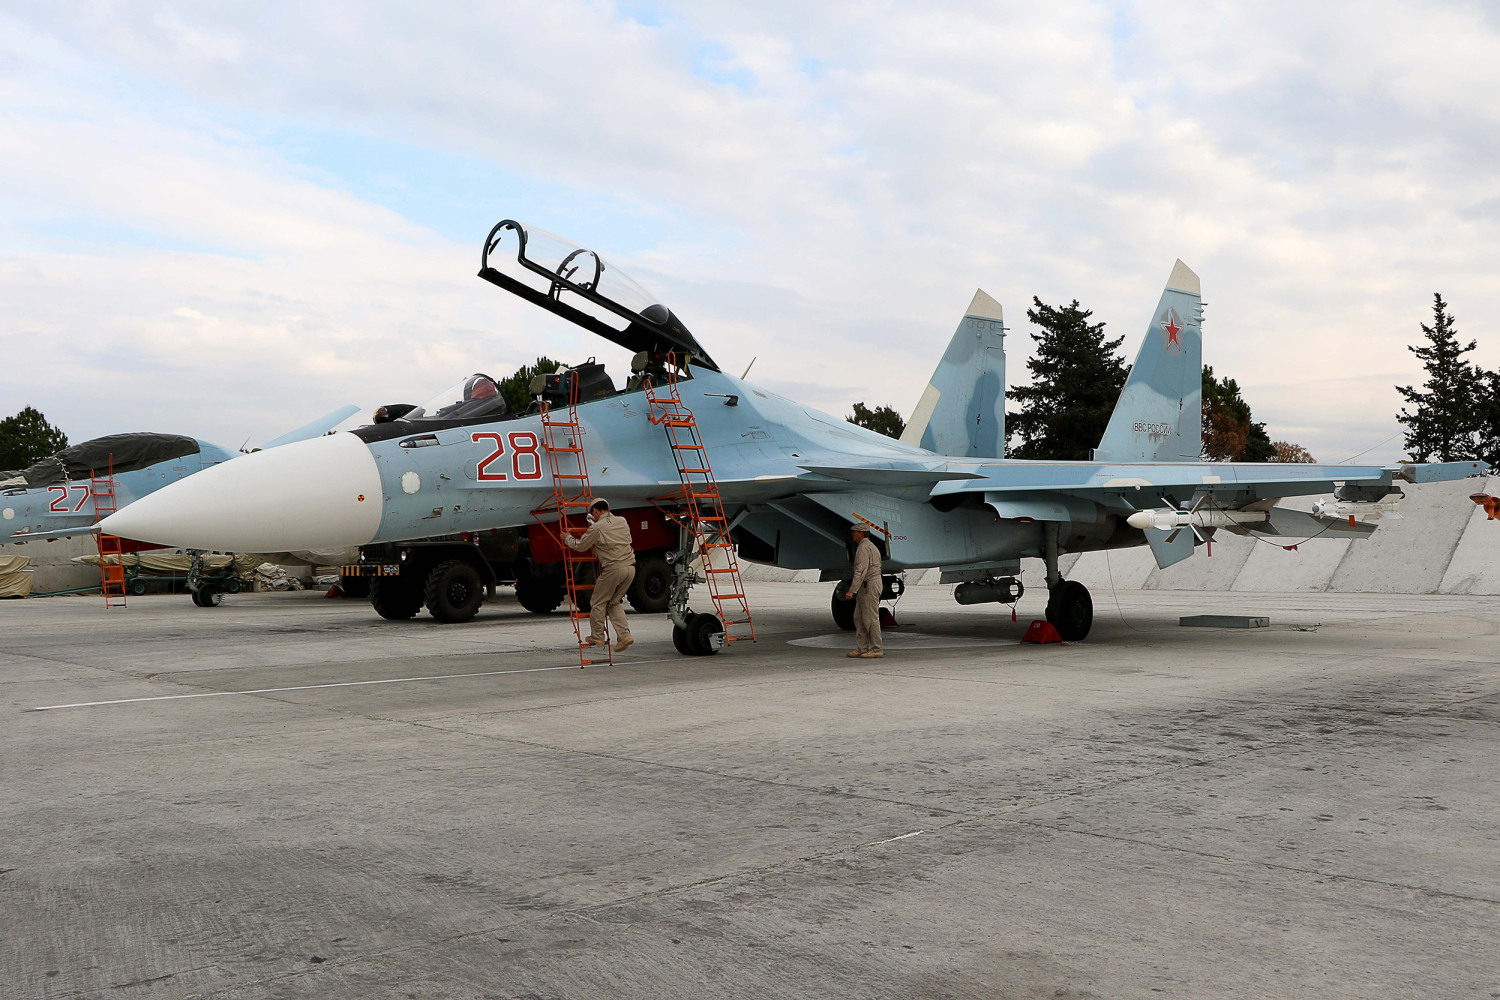 Russia Plans to Sell Iran Up to $8B Worth of Weapons ...